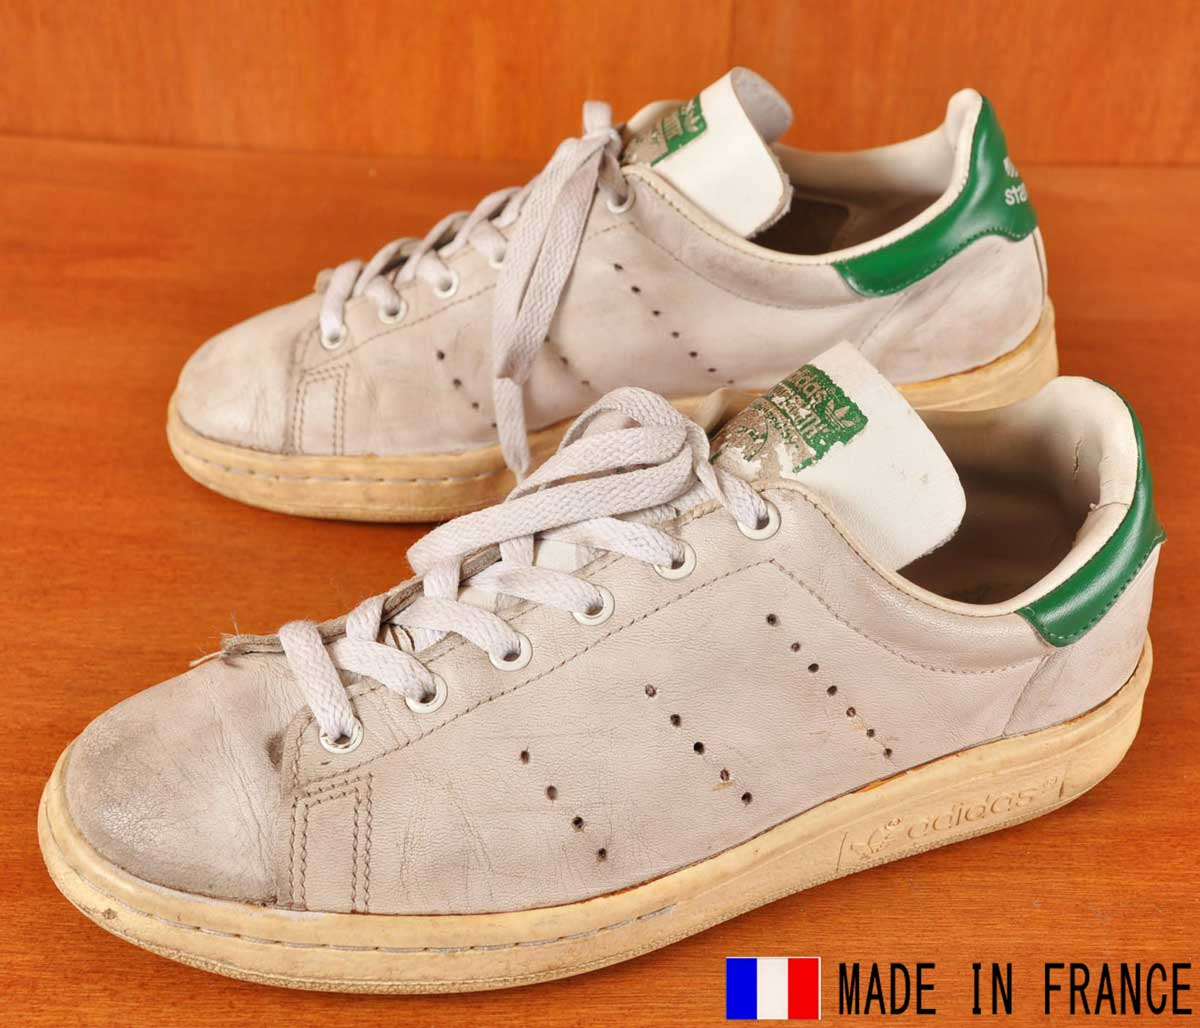 Vintage 1980s France made adidas adidas STAN SMITH Stan Smith locate sneaker White Leather JPN24.5cm: